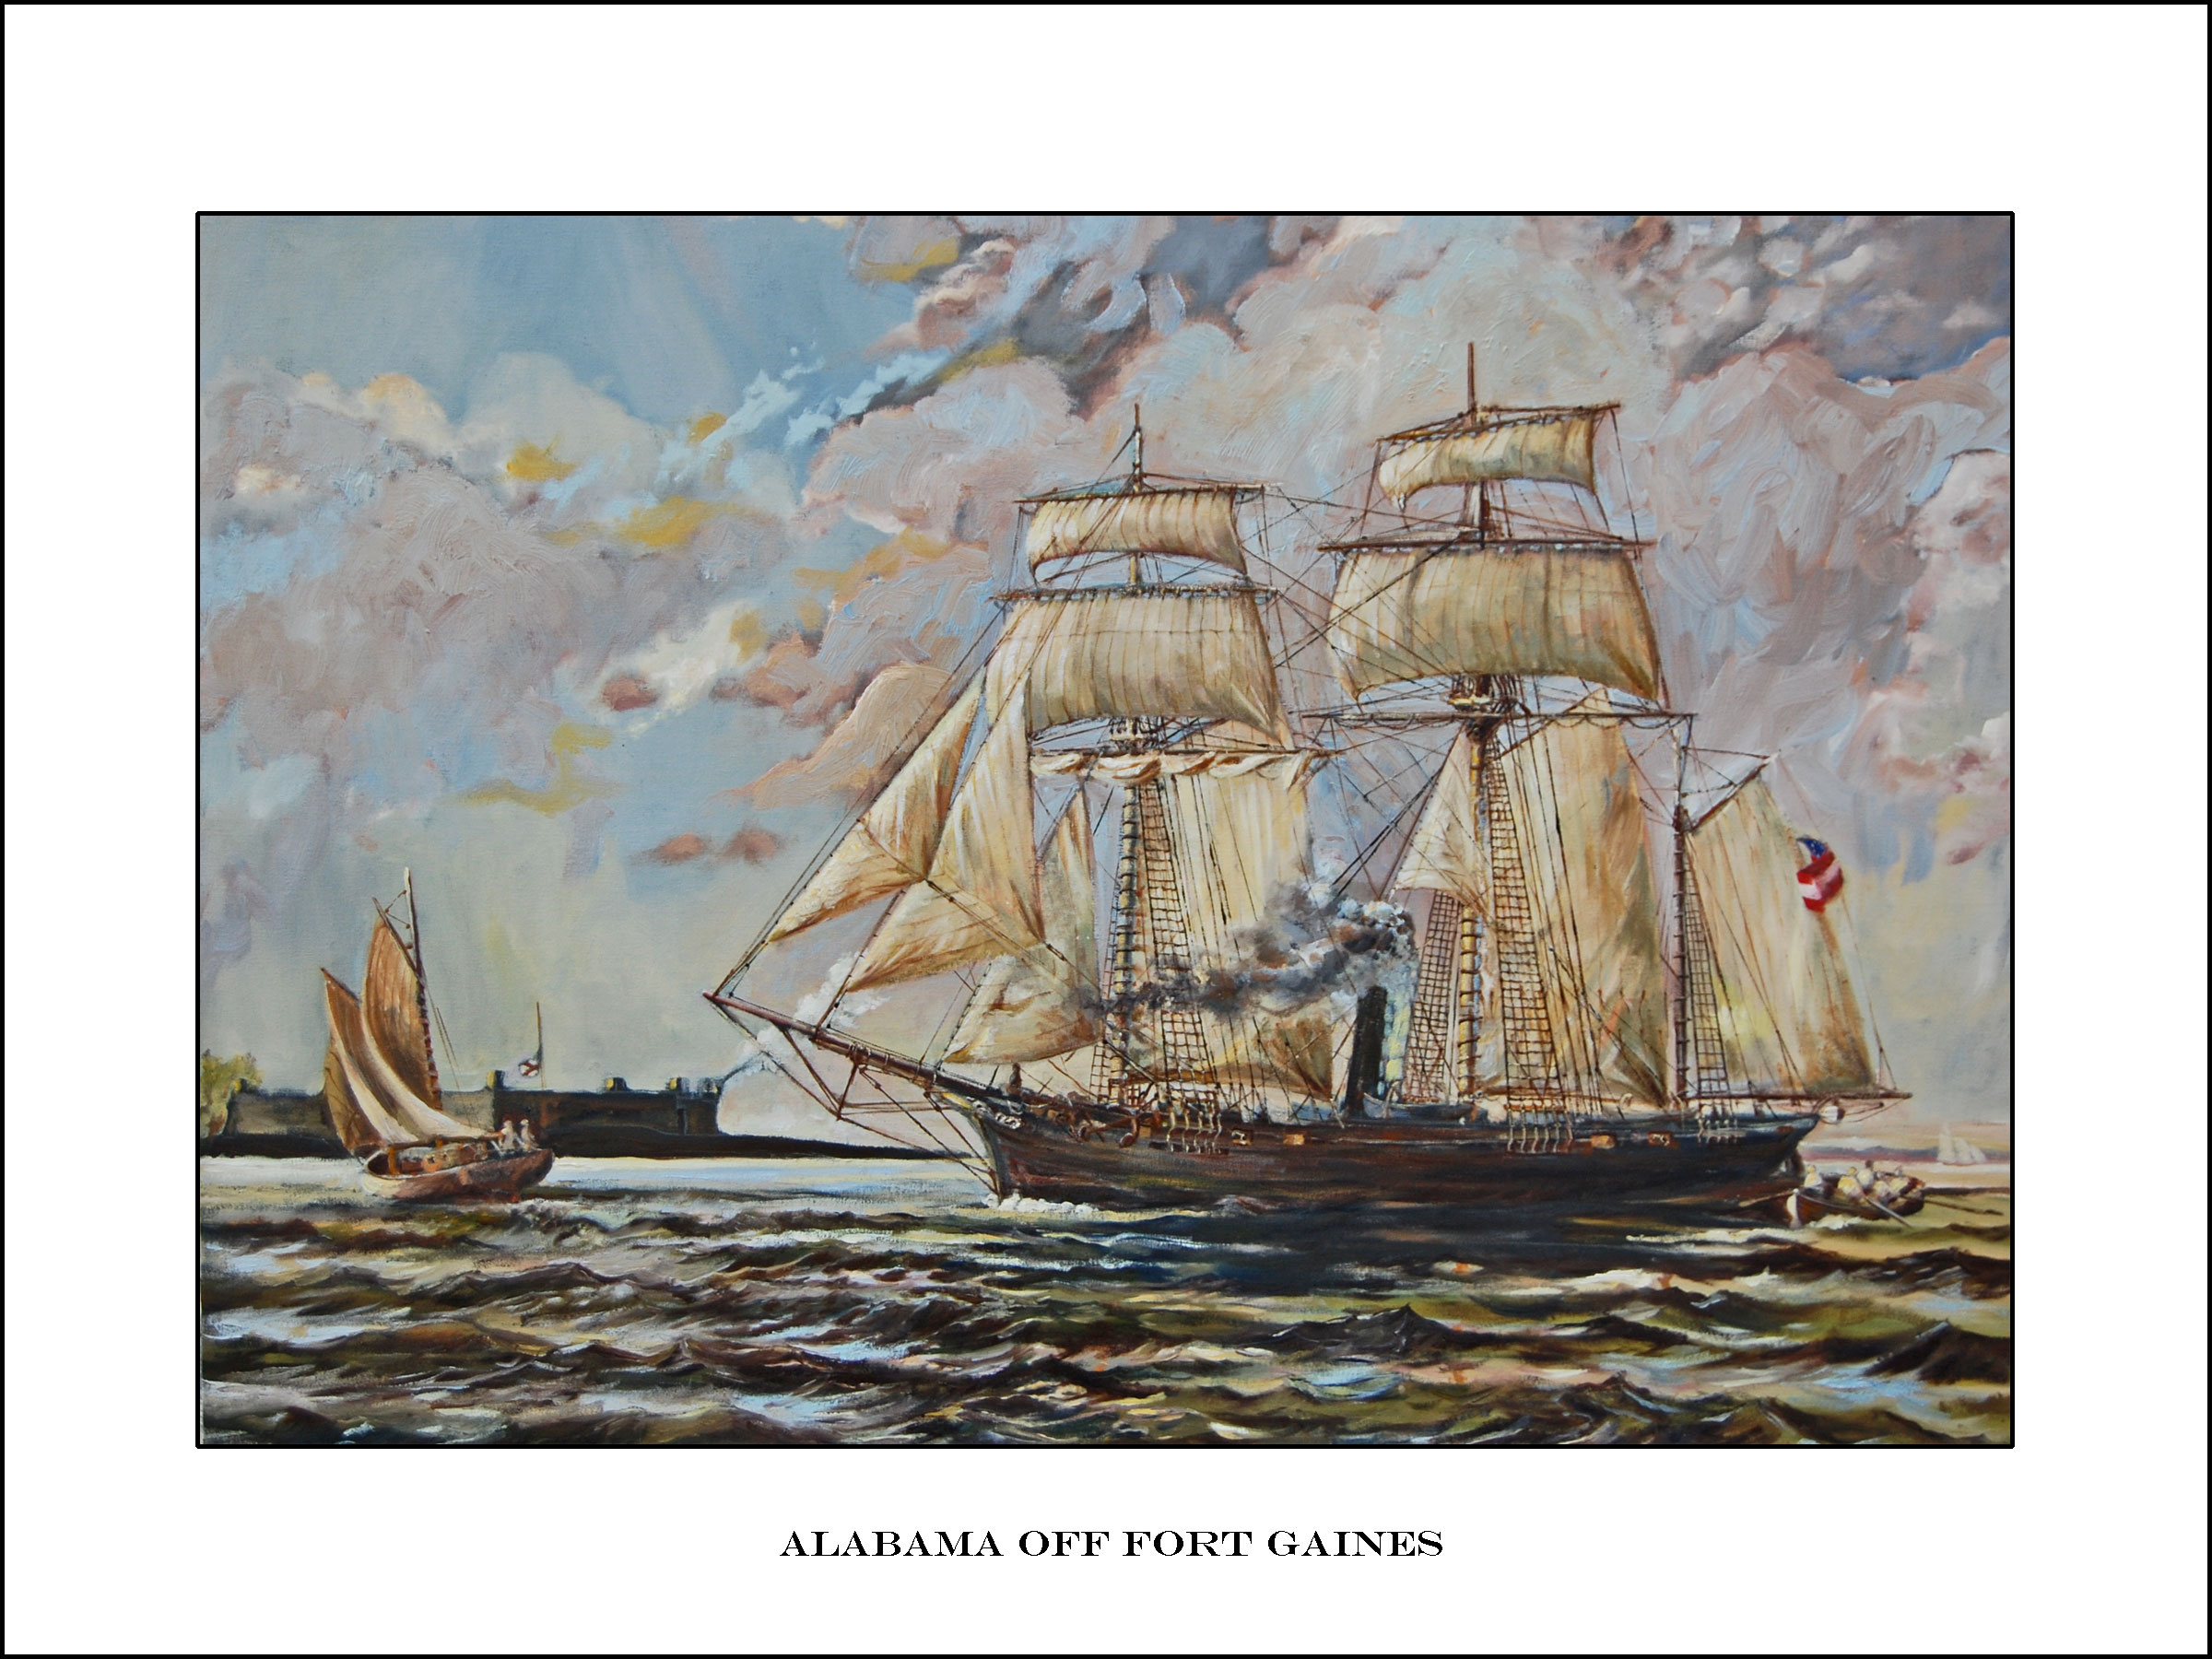 CSS Alabama Off Fort Gaines